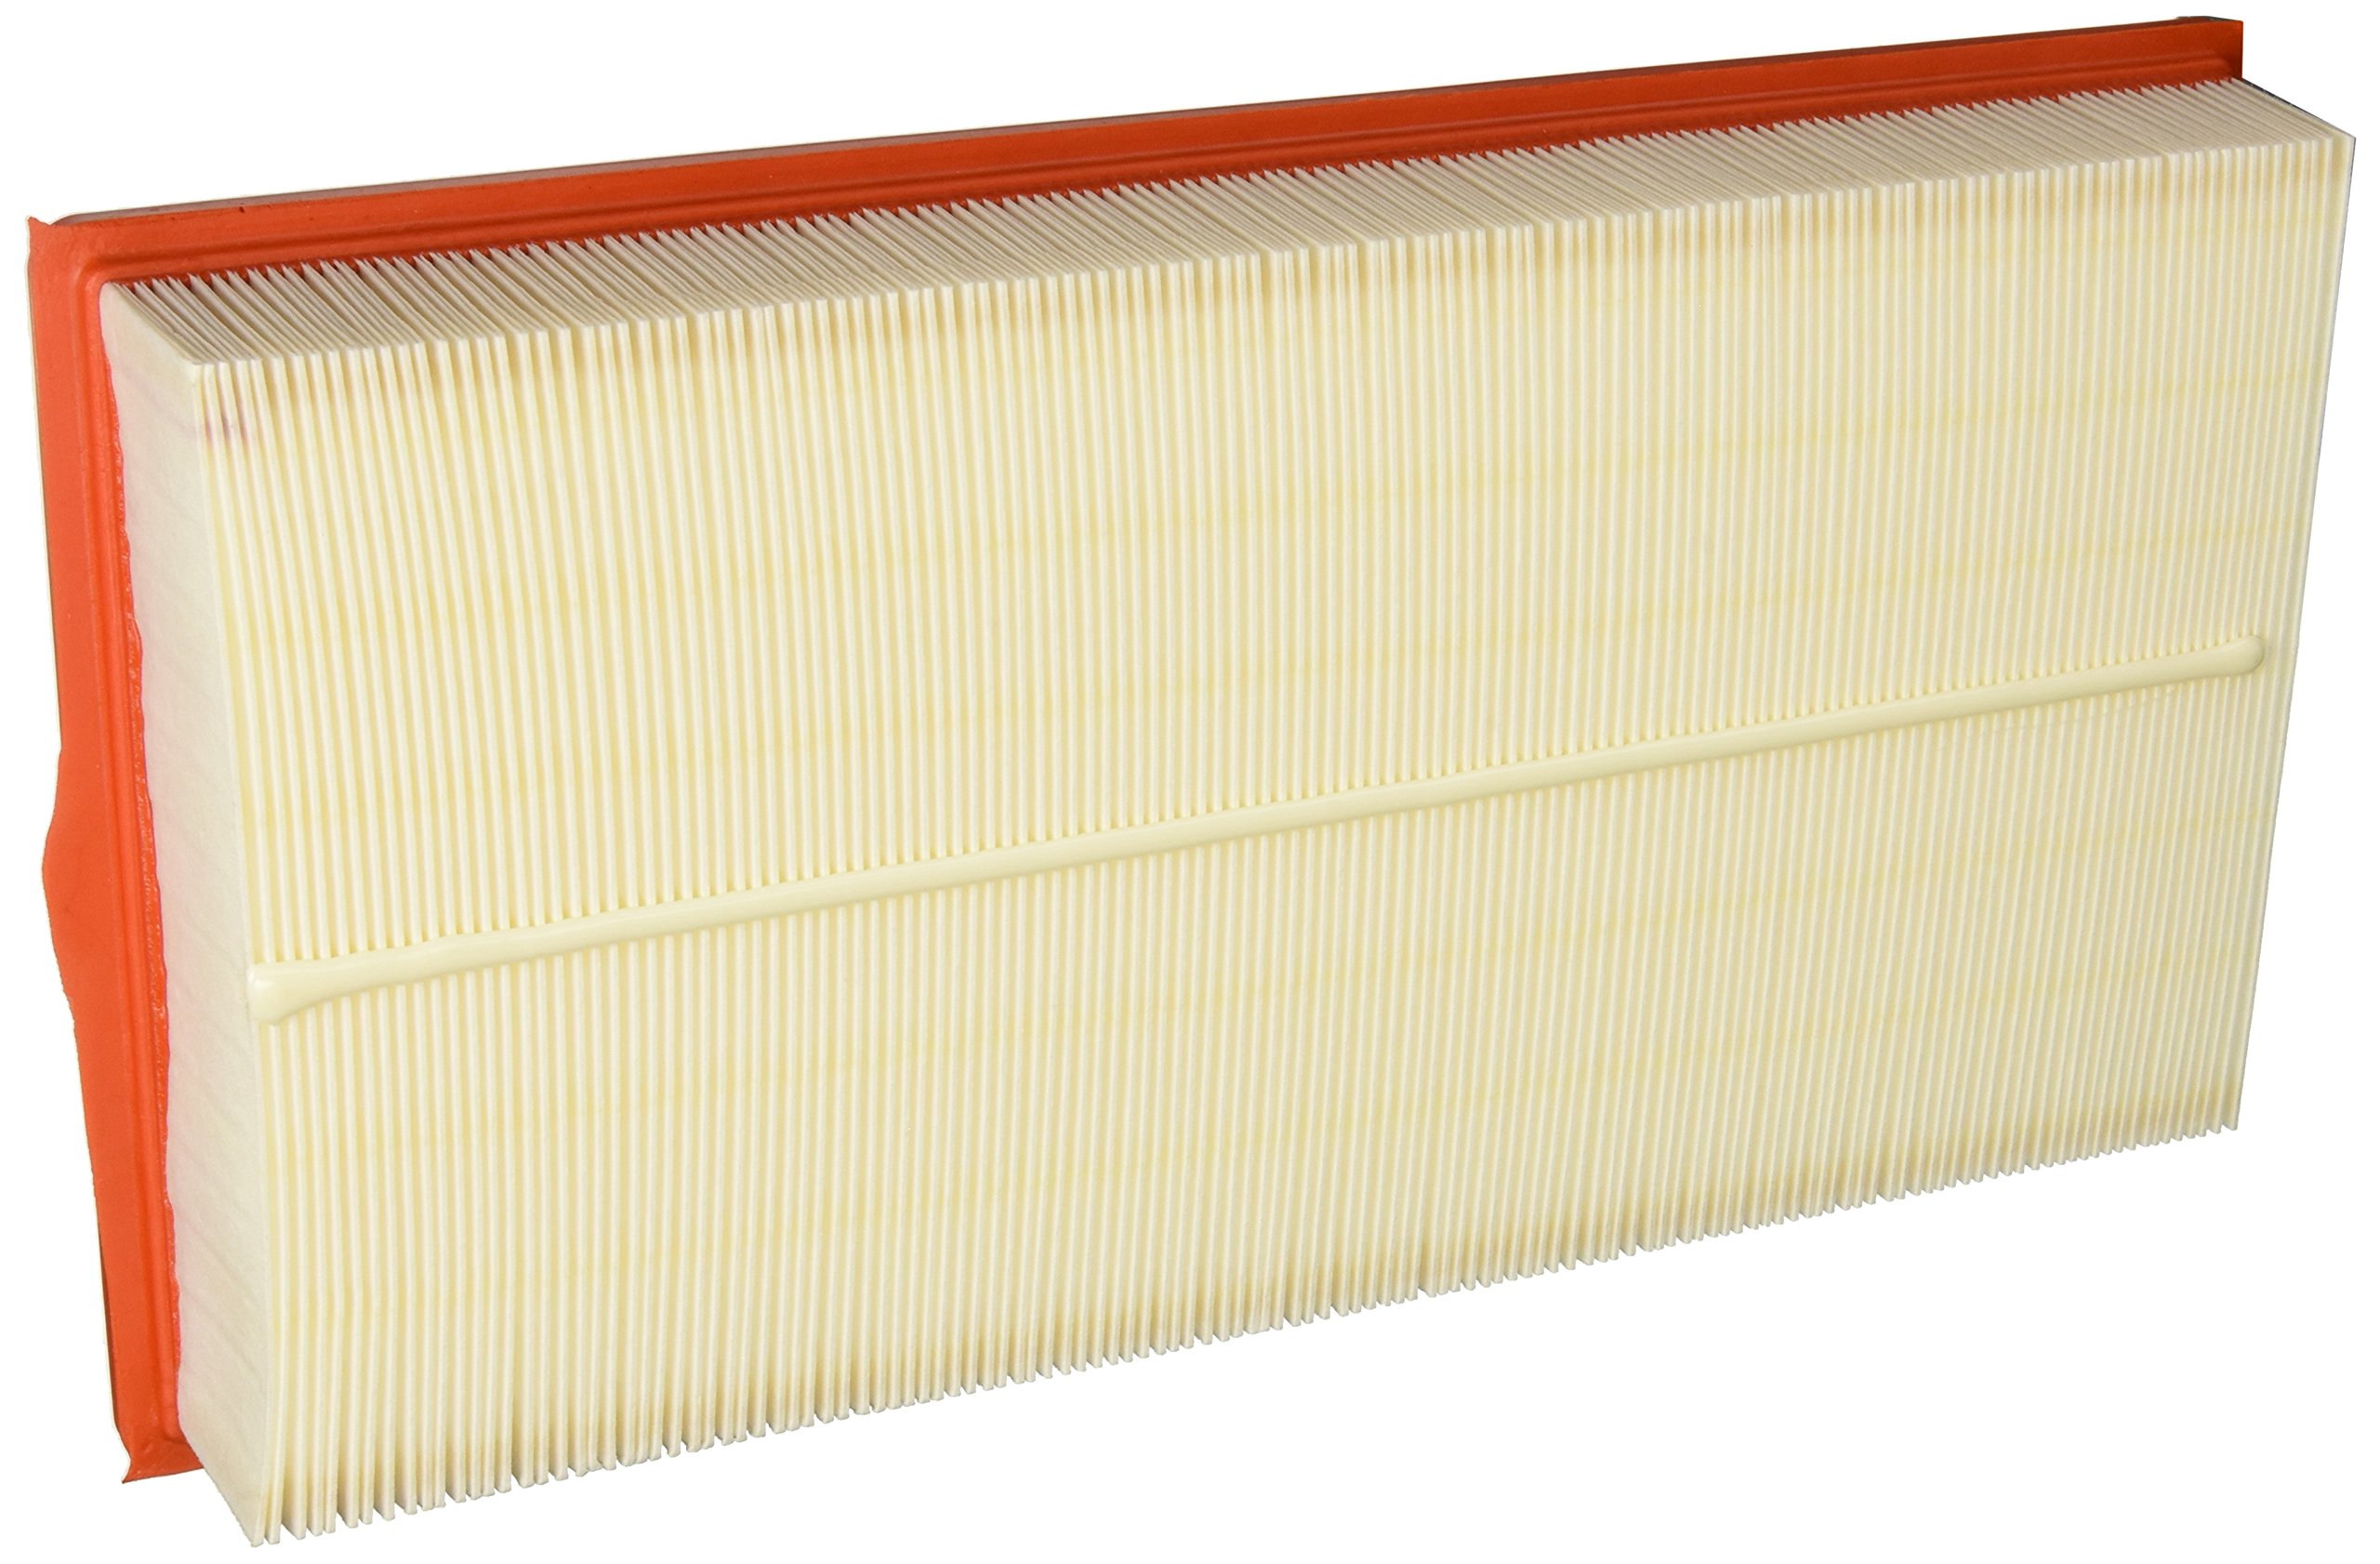 WIX Filters - 49817 Heavy Duty Air Filter Panel, Pack of 1 by Wix